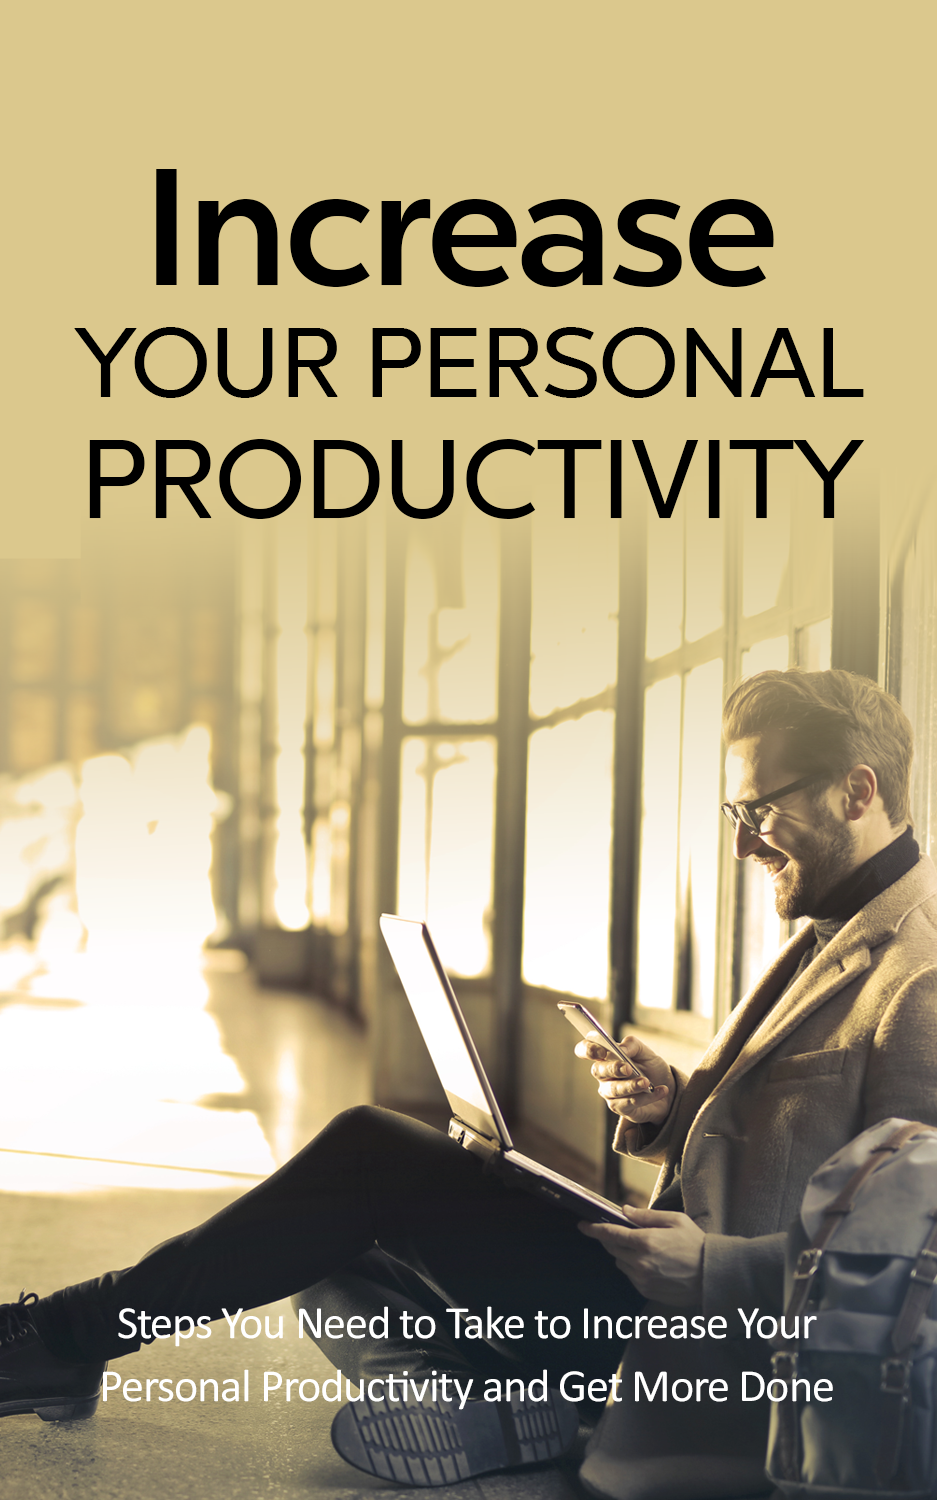 Increase Your Personal Productivity (Steps You Need To Take To Increase Your Personal Productivity And Get More Done) Ebook's Ebook Image